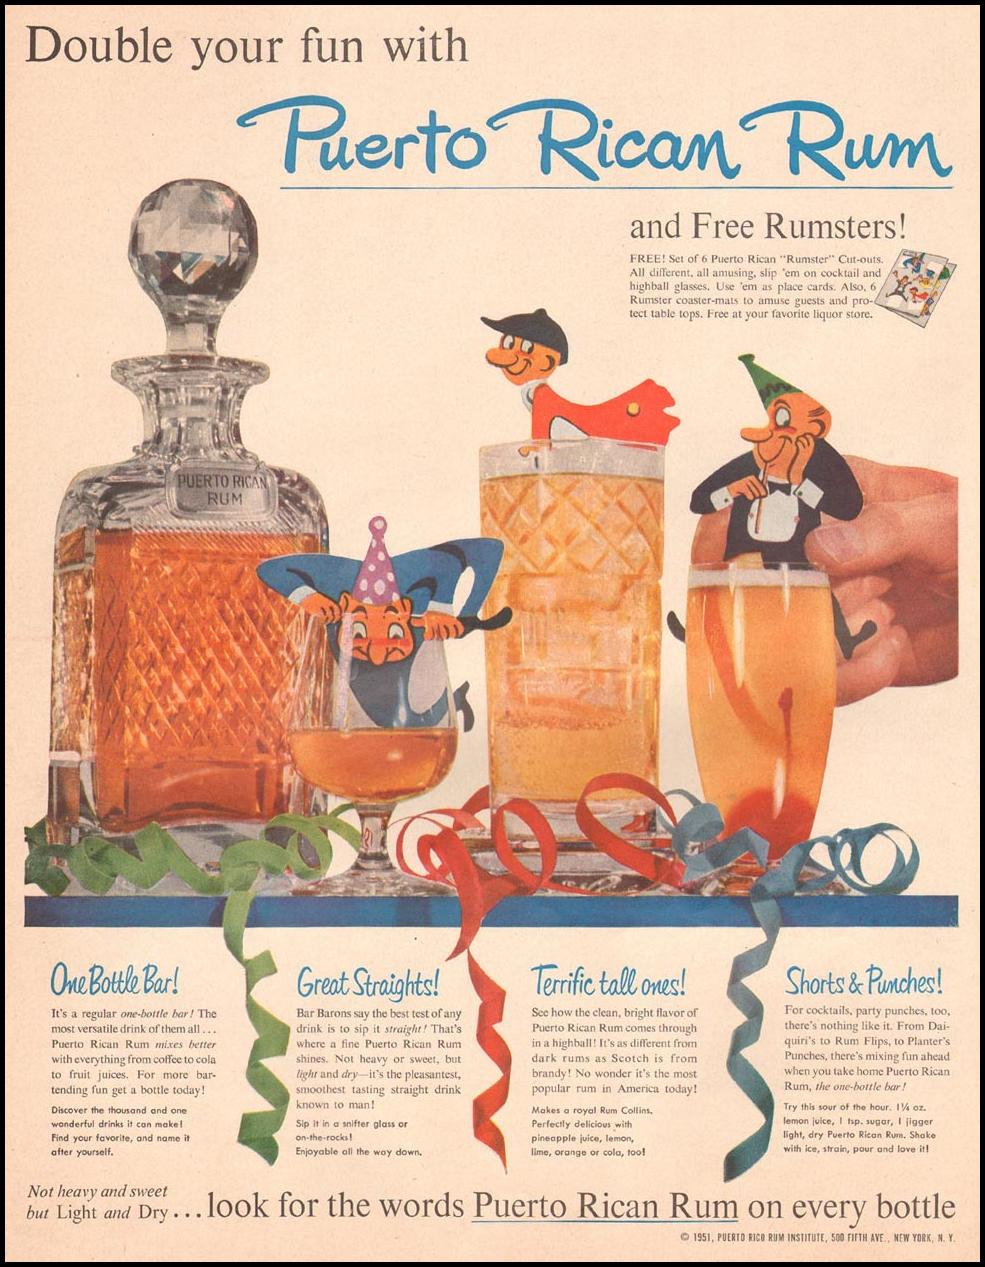 RUMS OF PUERTO RICO LIFE 04/30/1951 p. 78